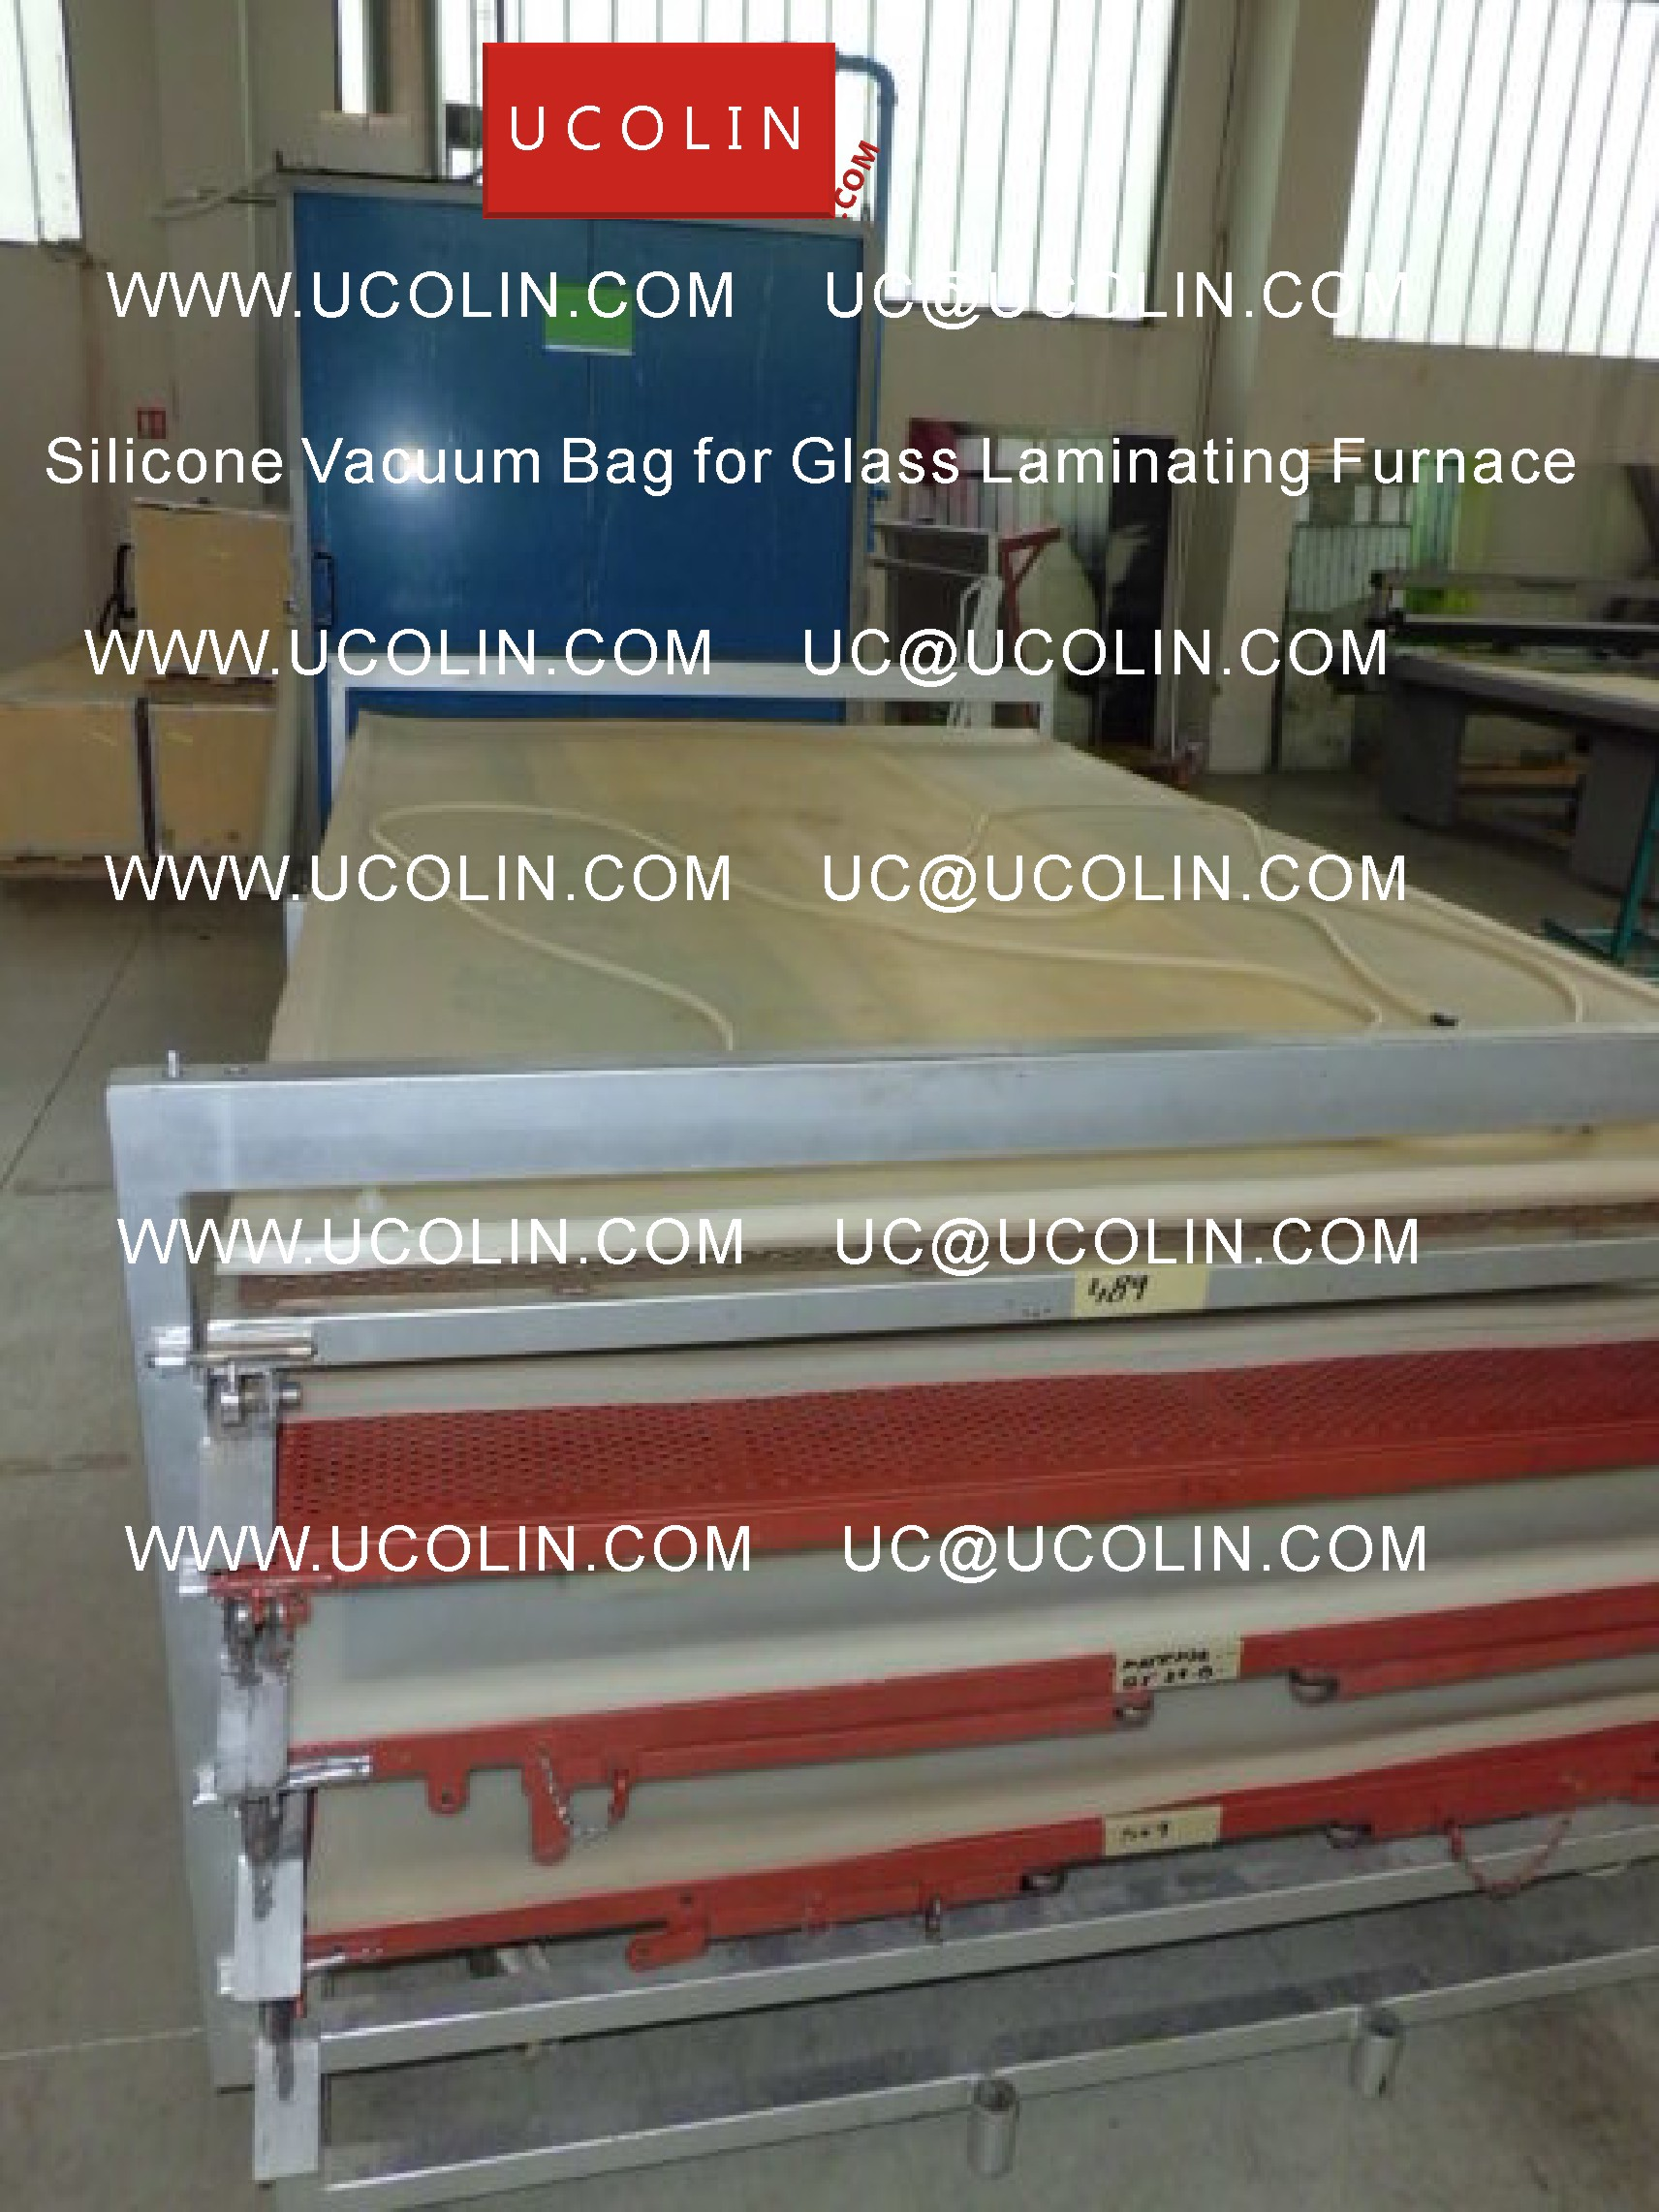 02 Application G Silicone Vacuum Bag for Safety Glass Laminating Furnace